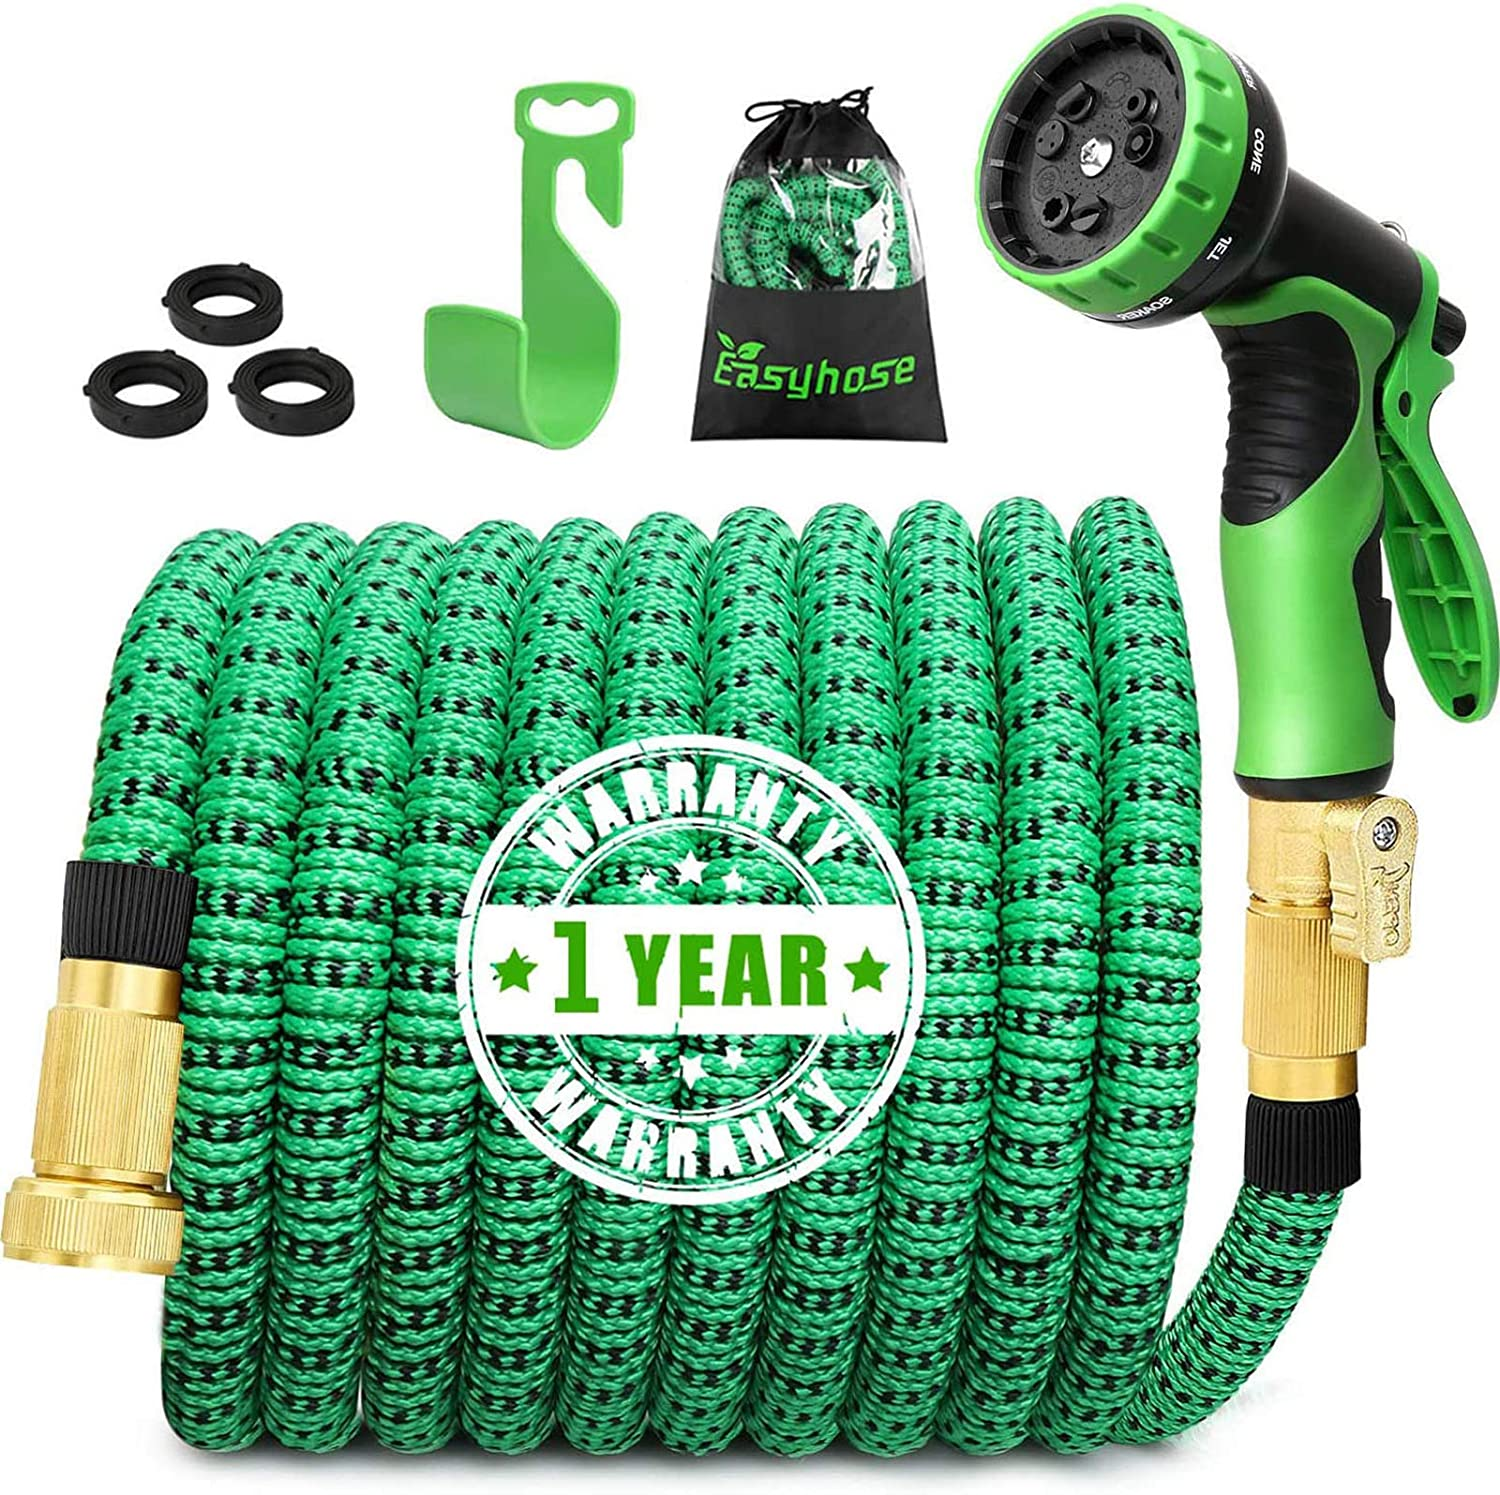 EASYHOSE Garden Hose 25ft,Expandable Garden Water Hose for yard With 9 Function Spray Nozzle, Durable three-layer latex core,Flexible Hose and Solid Brass Connectors,Easy store leak-proof garden hose